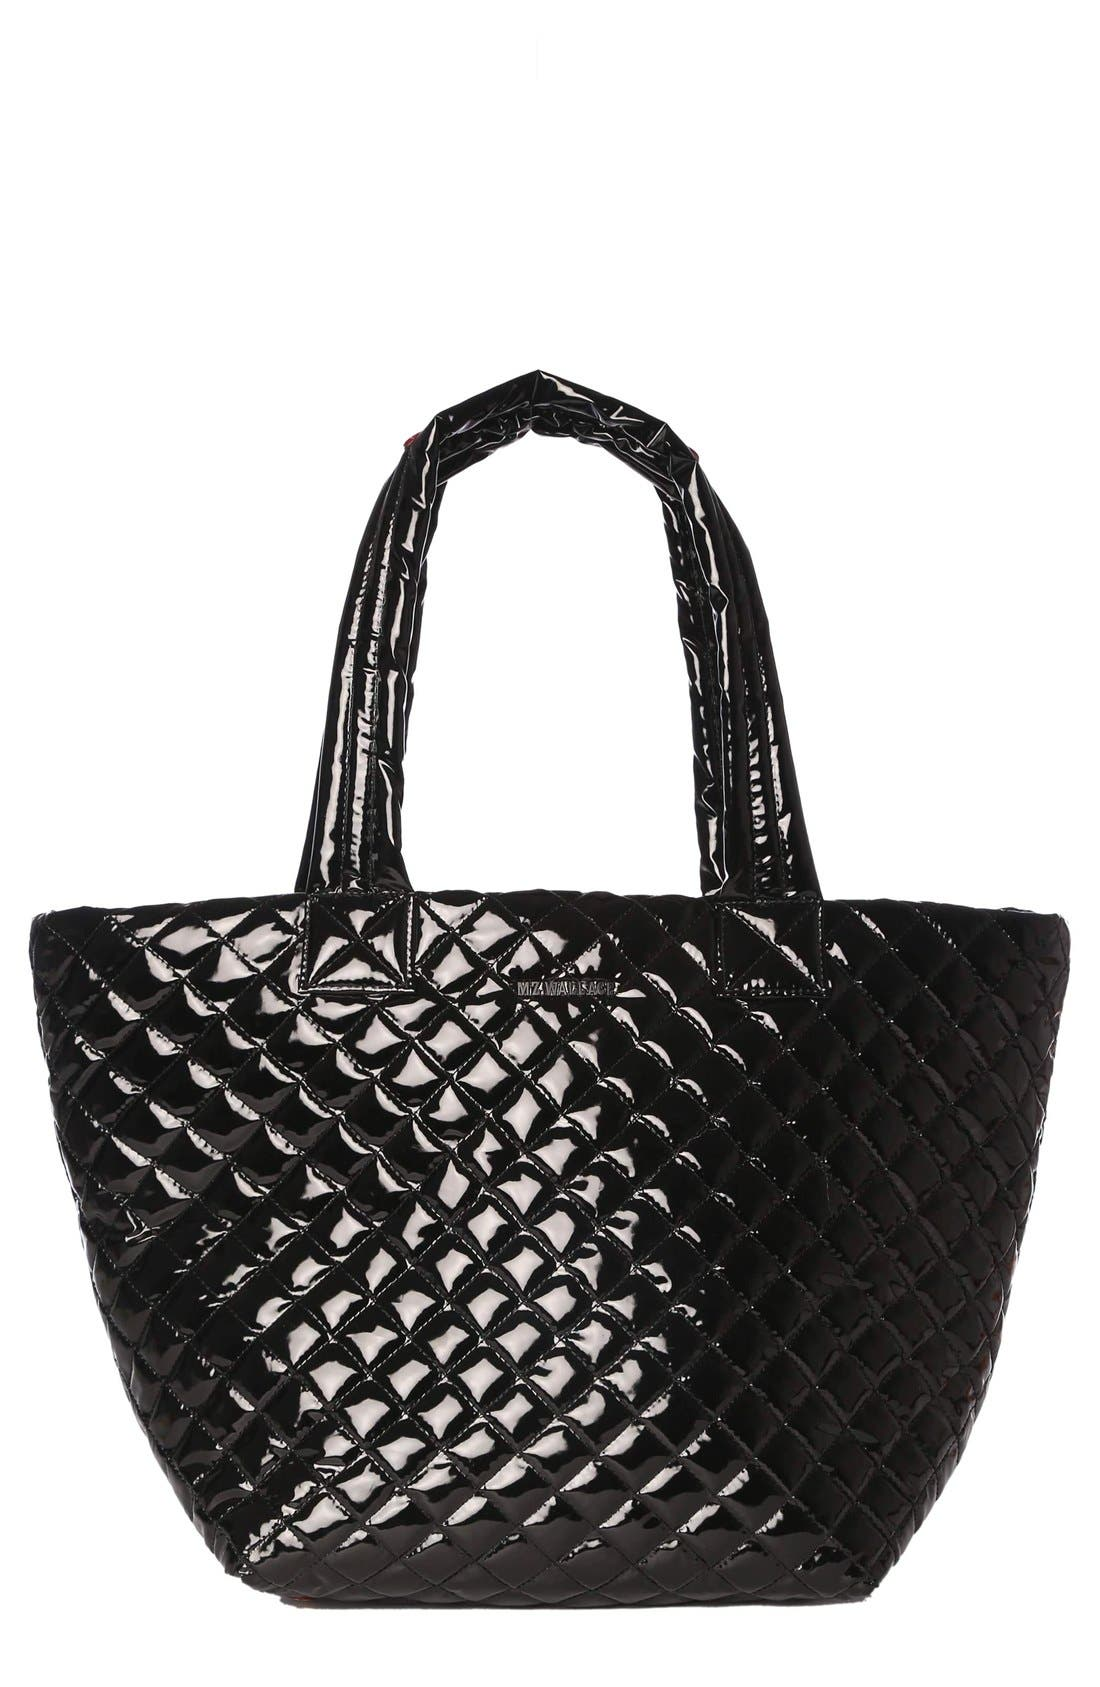 Main Image - MZ Wallace 'Medium Metro' Quilted Lacquer Tote